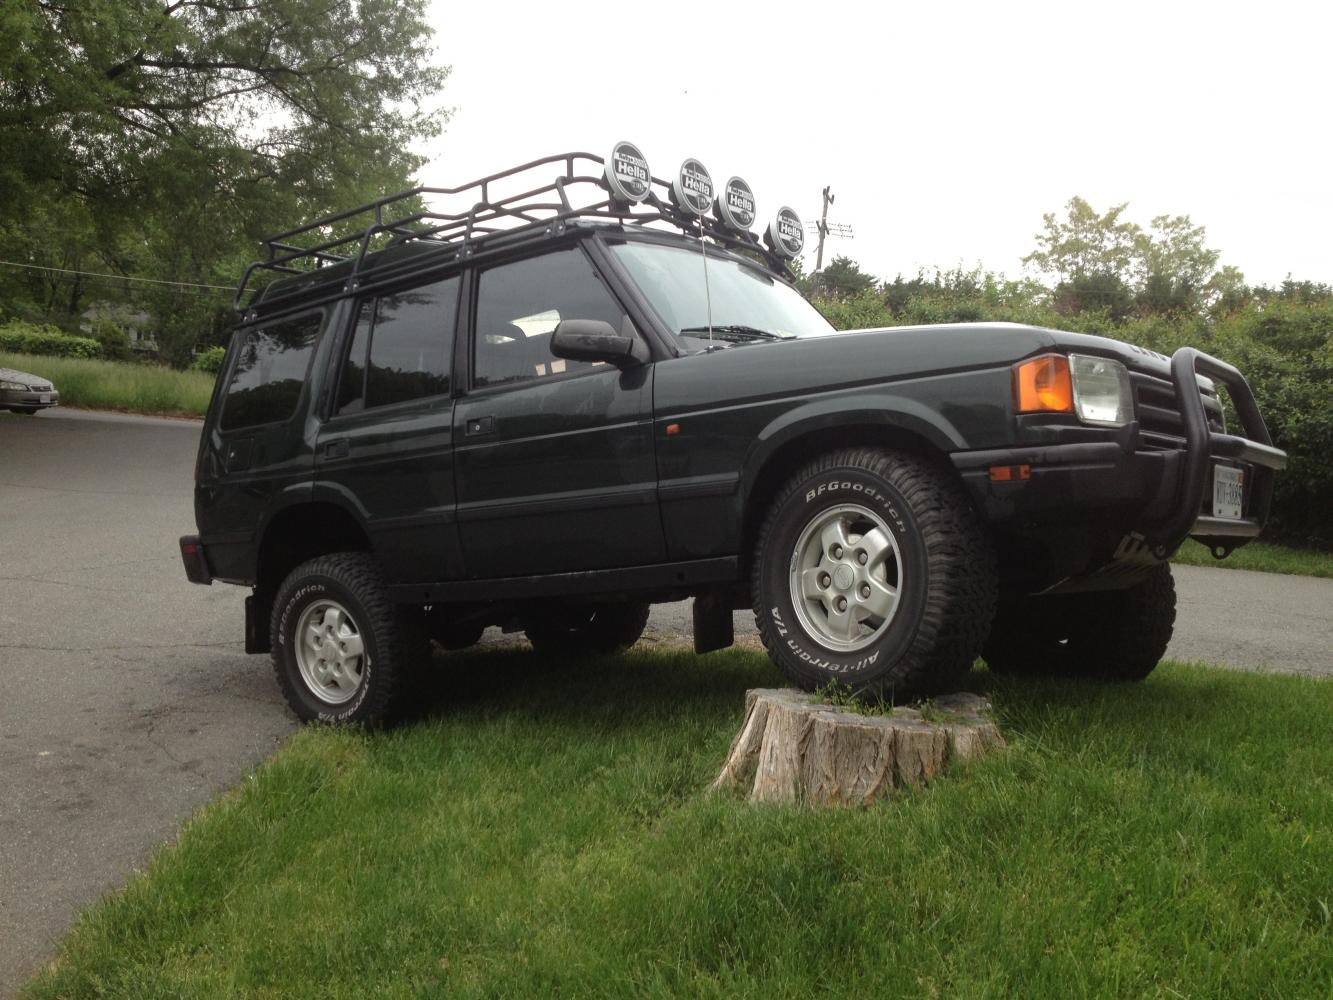 Land Rover Alexandria >> 1995 land rover discovery 1 (lifted with many extras) - Land Rover Forums : Land Rover and Range ...